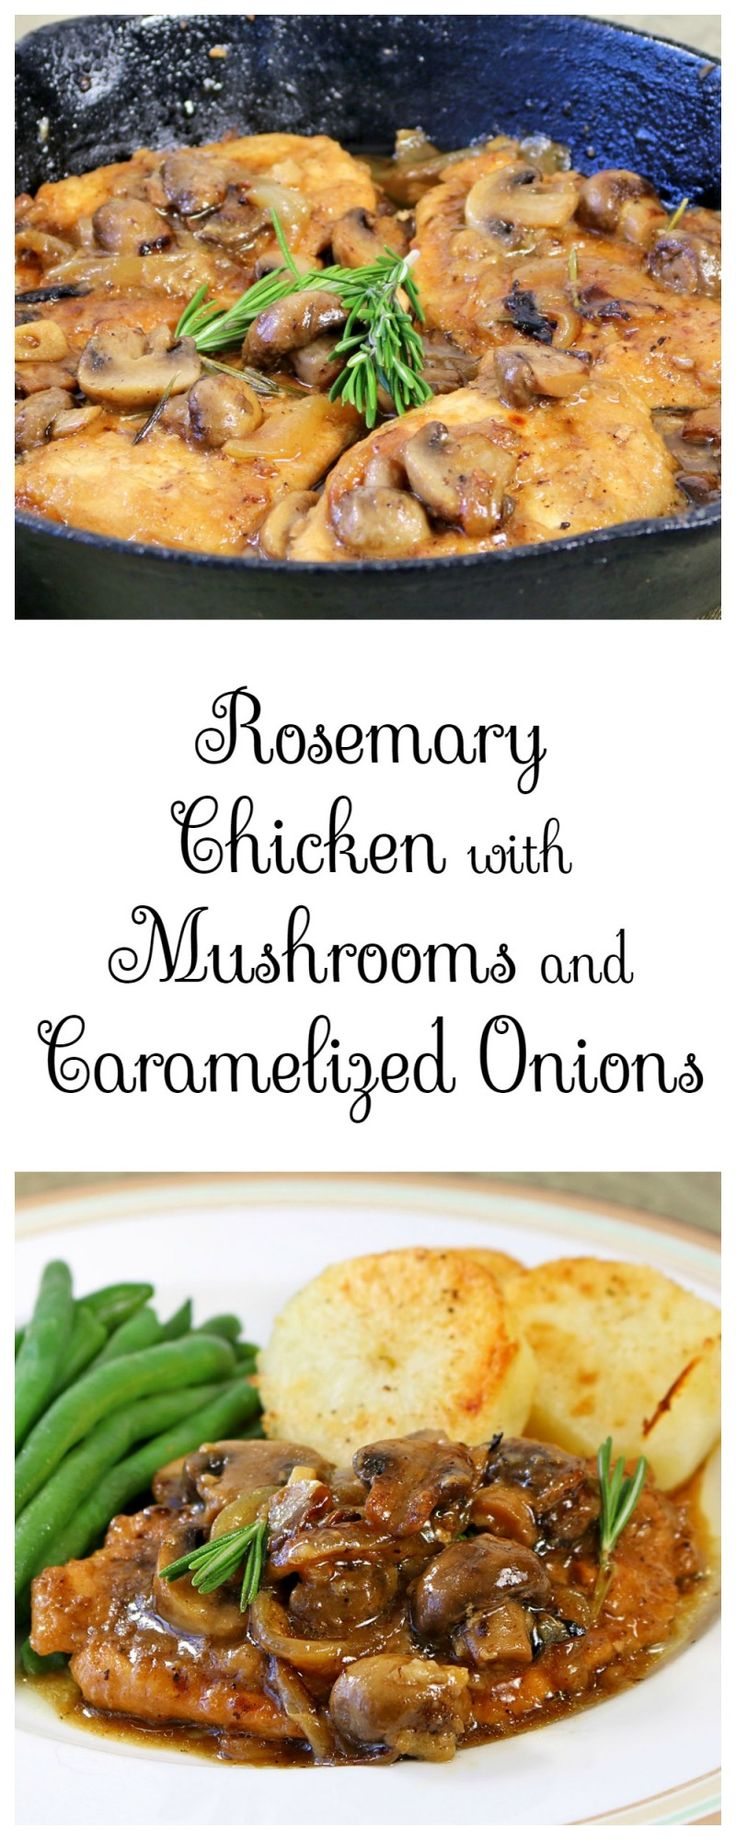 Rosemary Chicken with Mushrooms and Caramelized Onions served with roasted potatoes and green beans. - Recipes, Food and Cooking